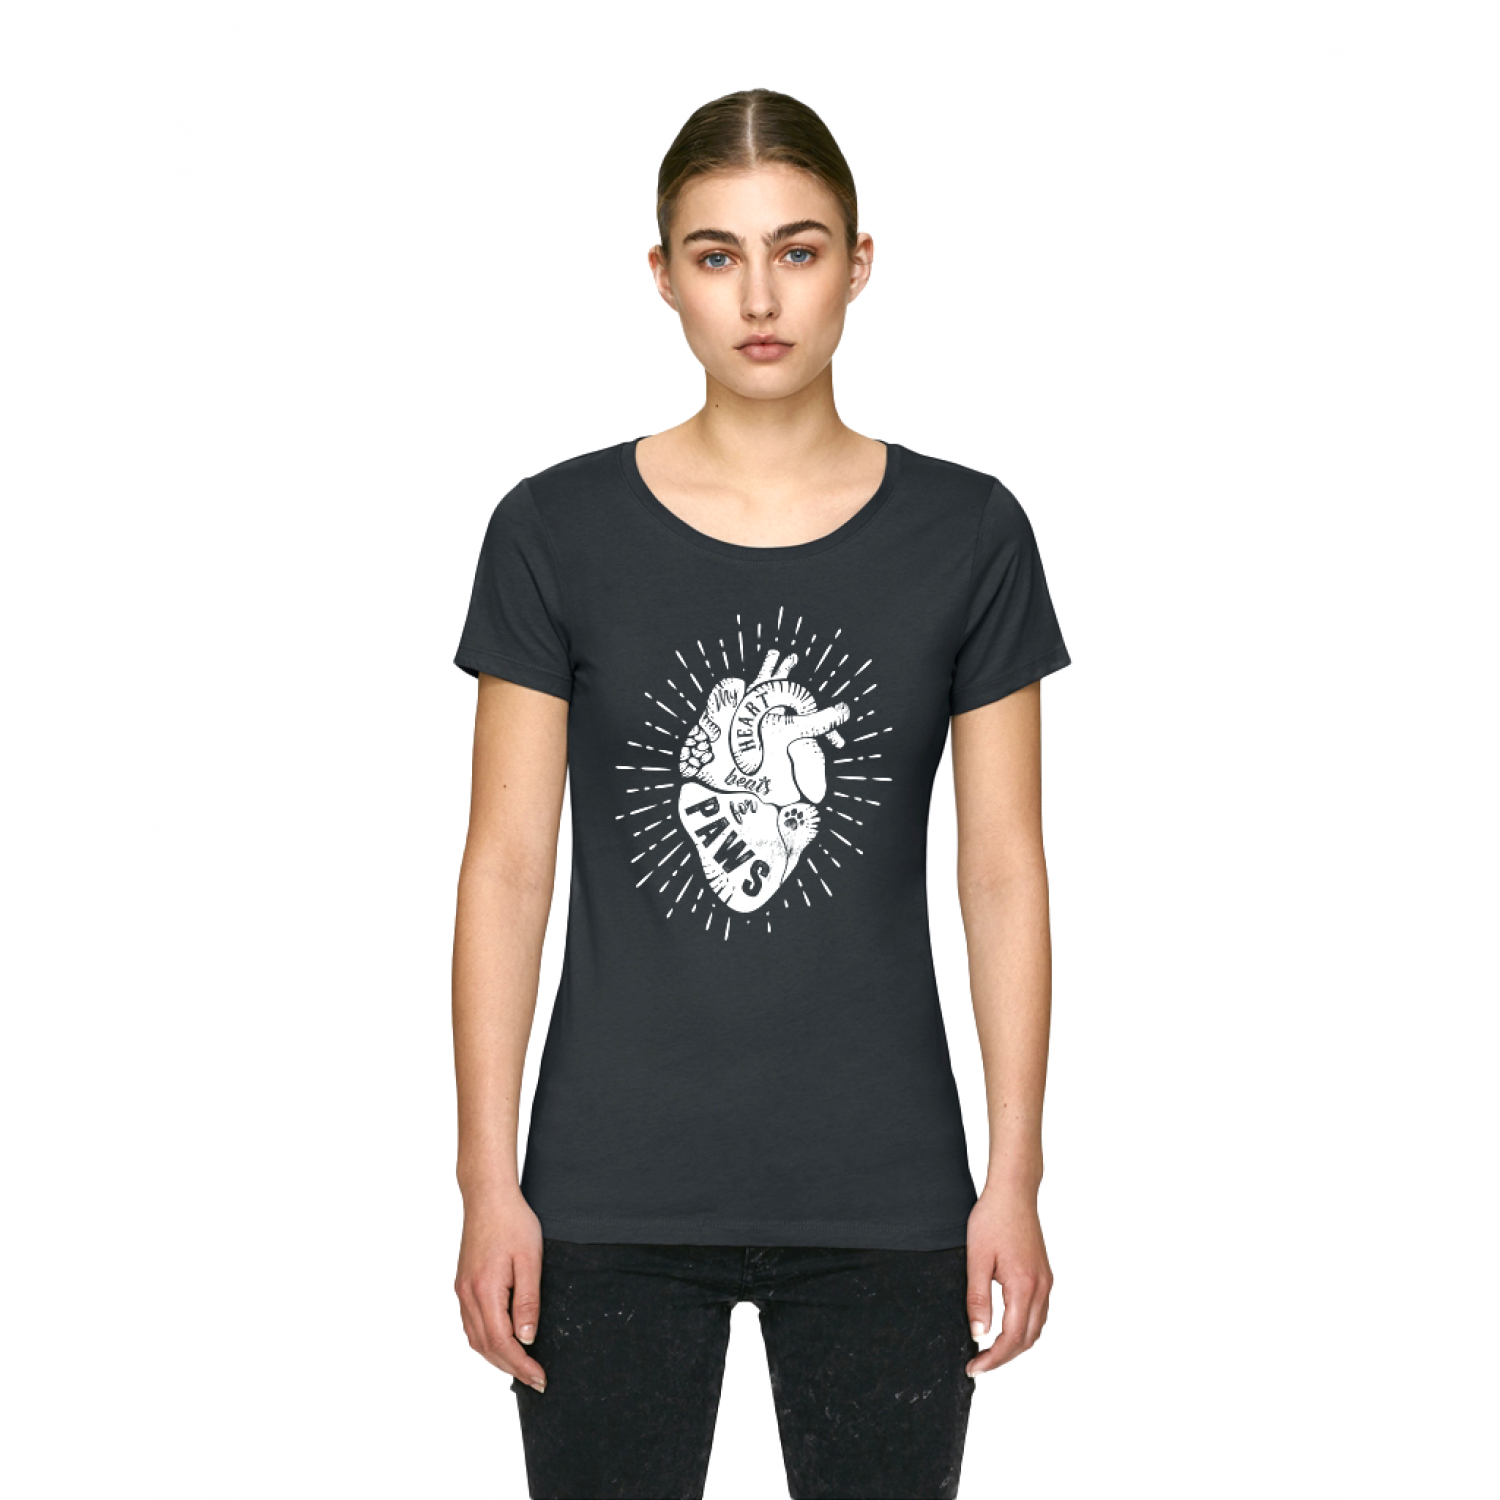 HEART FOR PAWS T-Shirt (Charity Project)